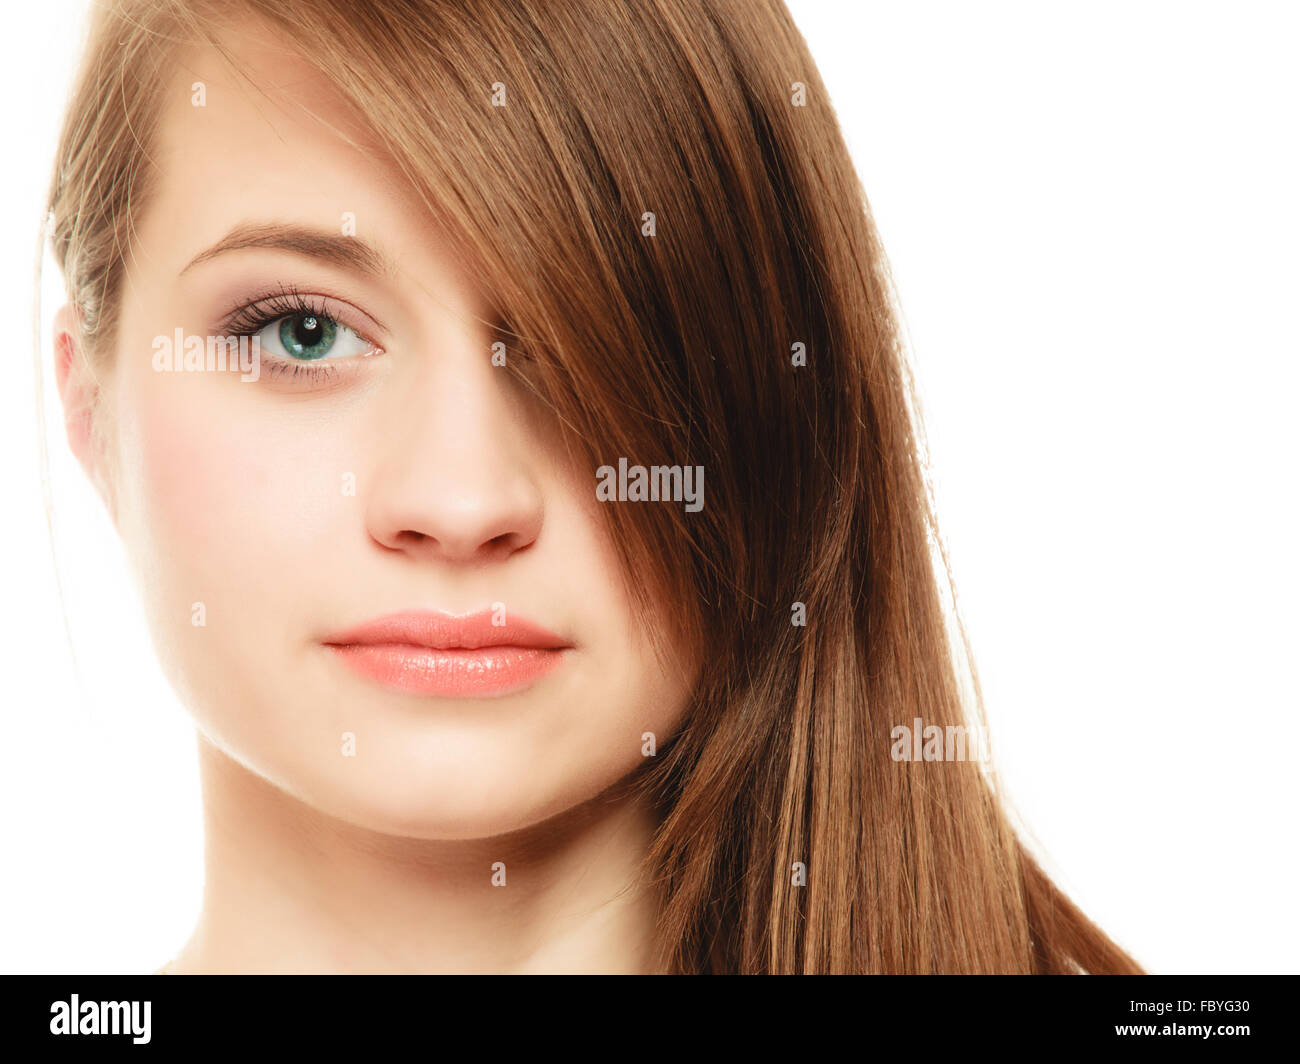 Hairstyle. Portrait of girl with long bang covering eye Stock Photo